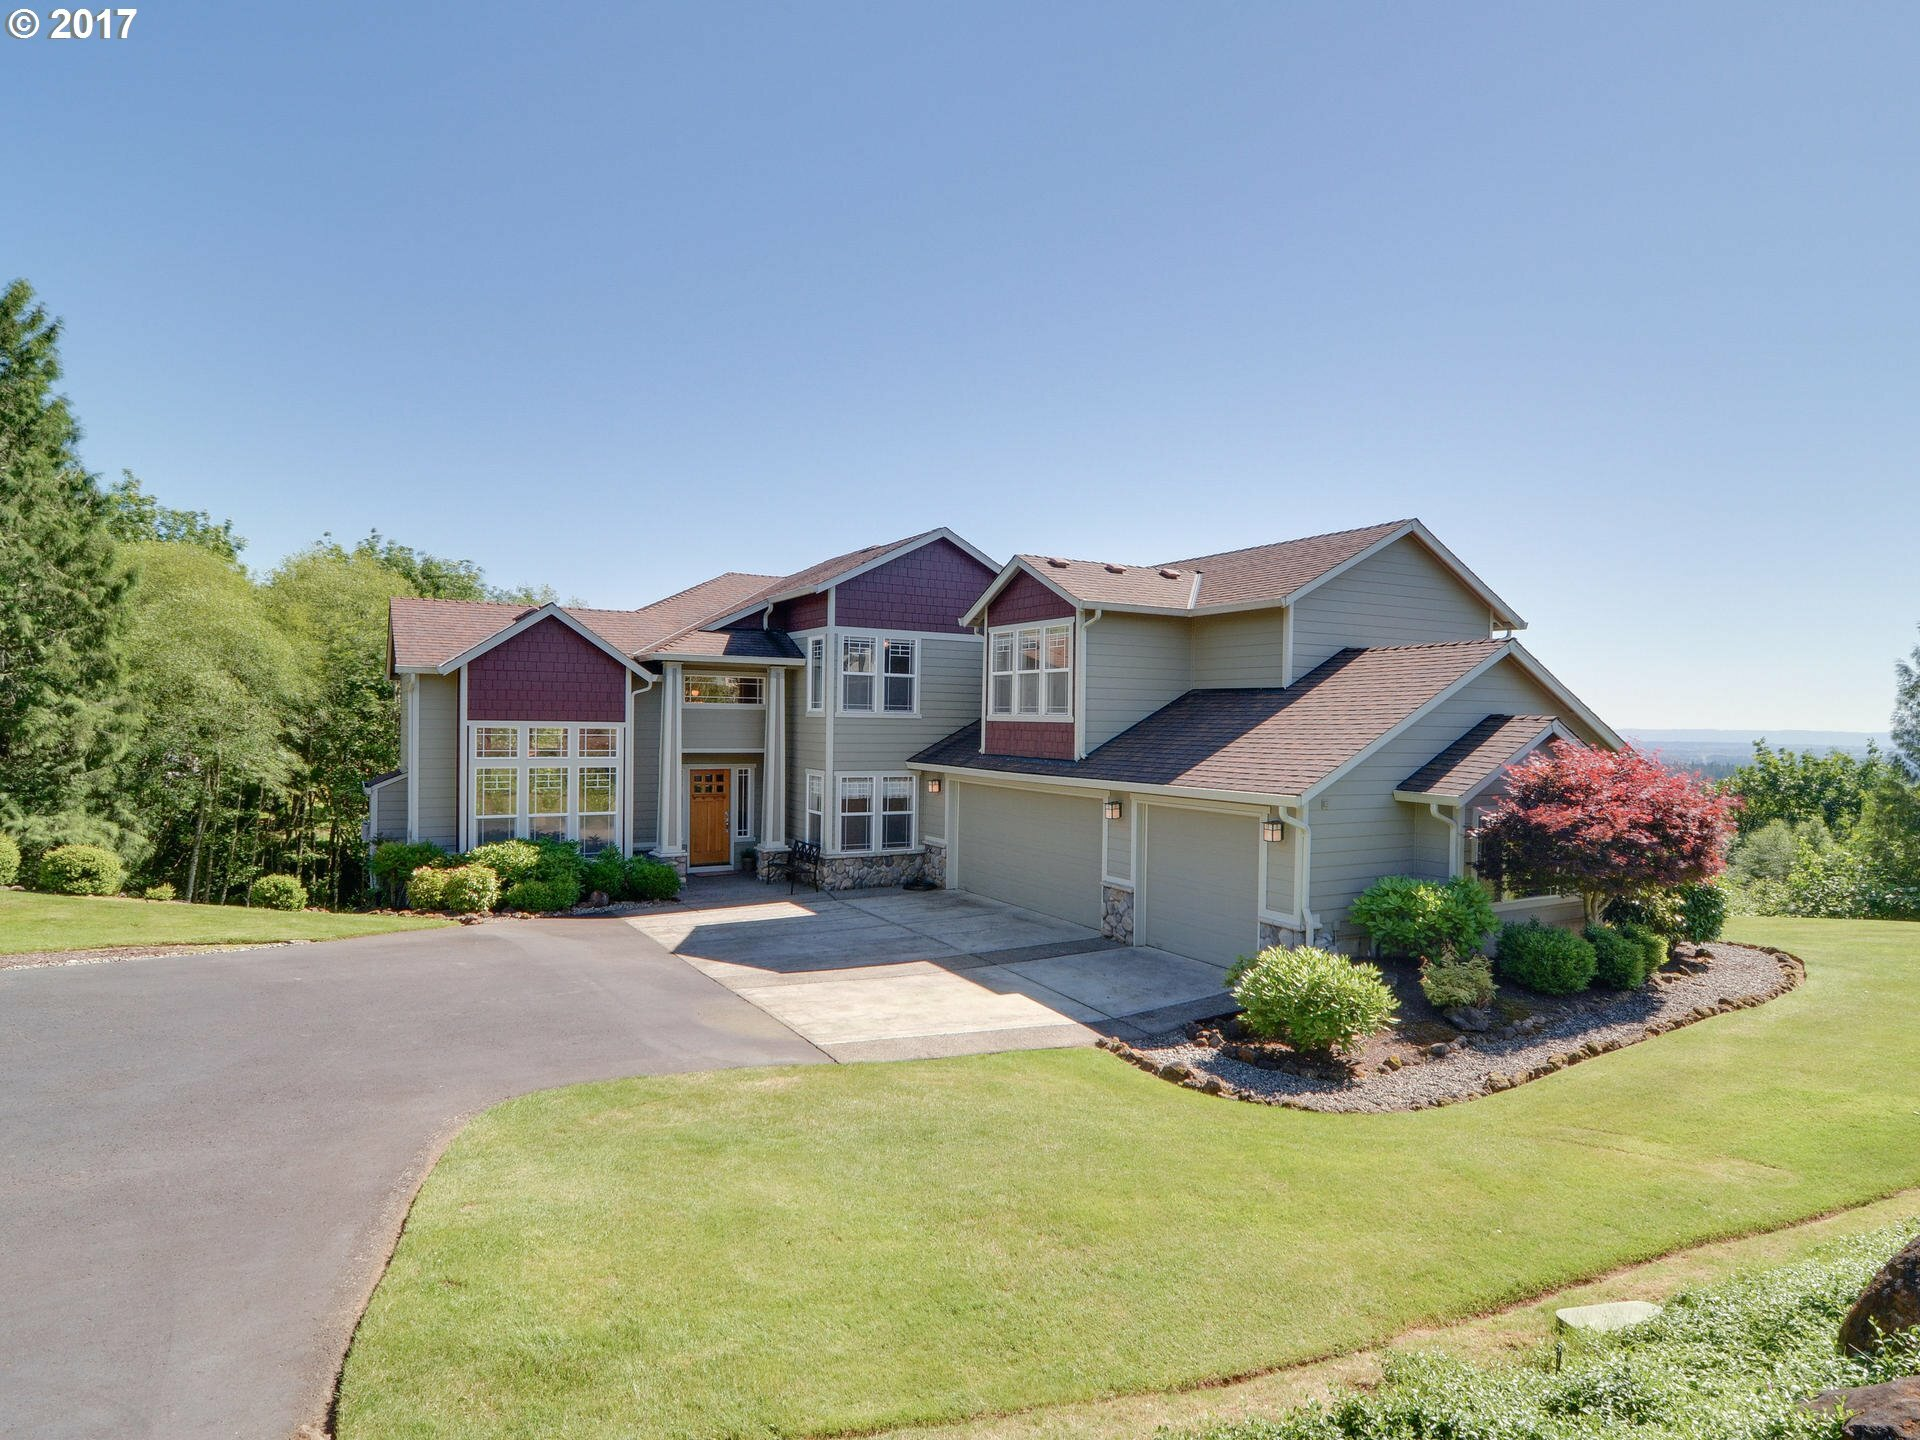 12606 Ne 239th Ave, Brush Prairie, WA - USA (photo 2)